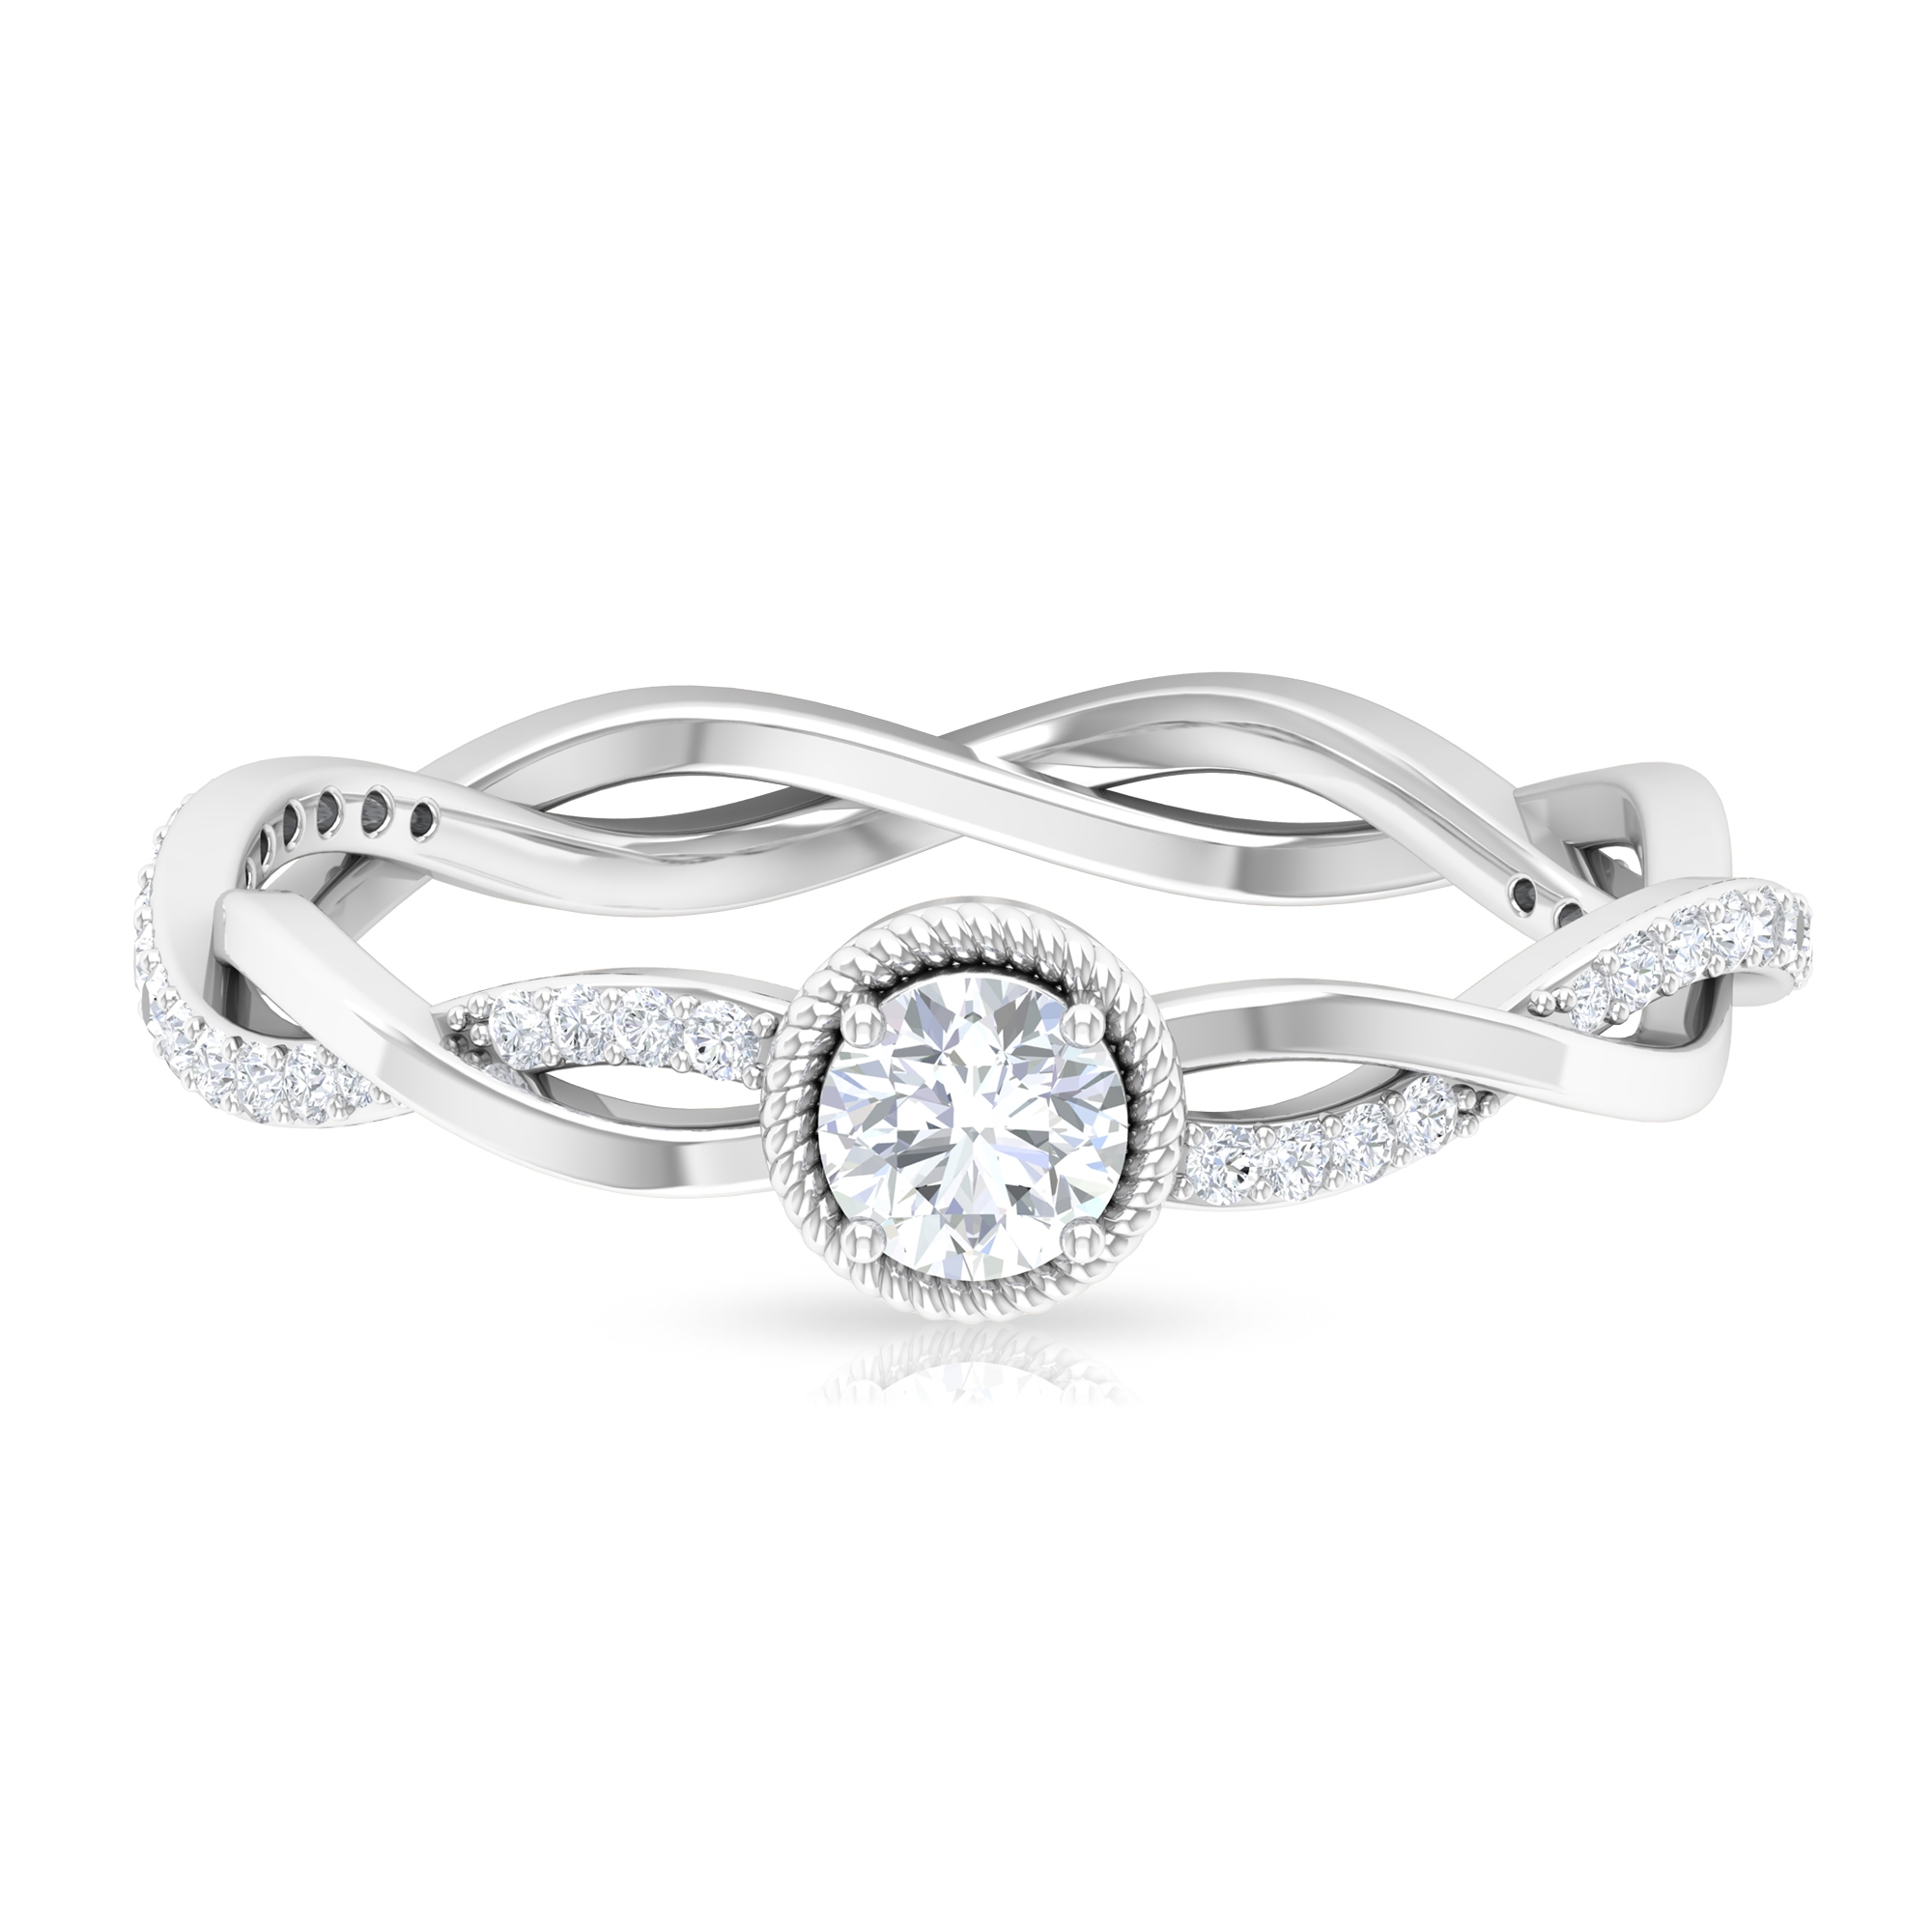 1/2 CT Diamond Solitaire and Gold Braided Engagement Ring with Accent